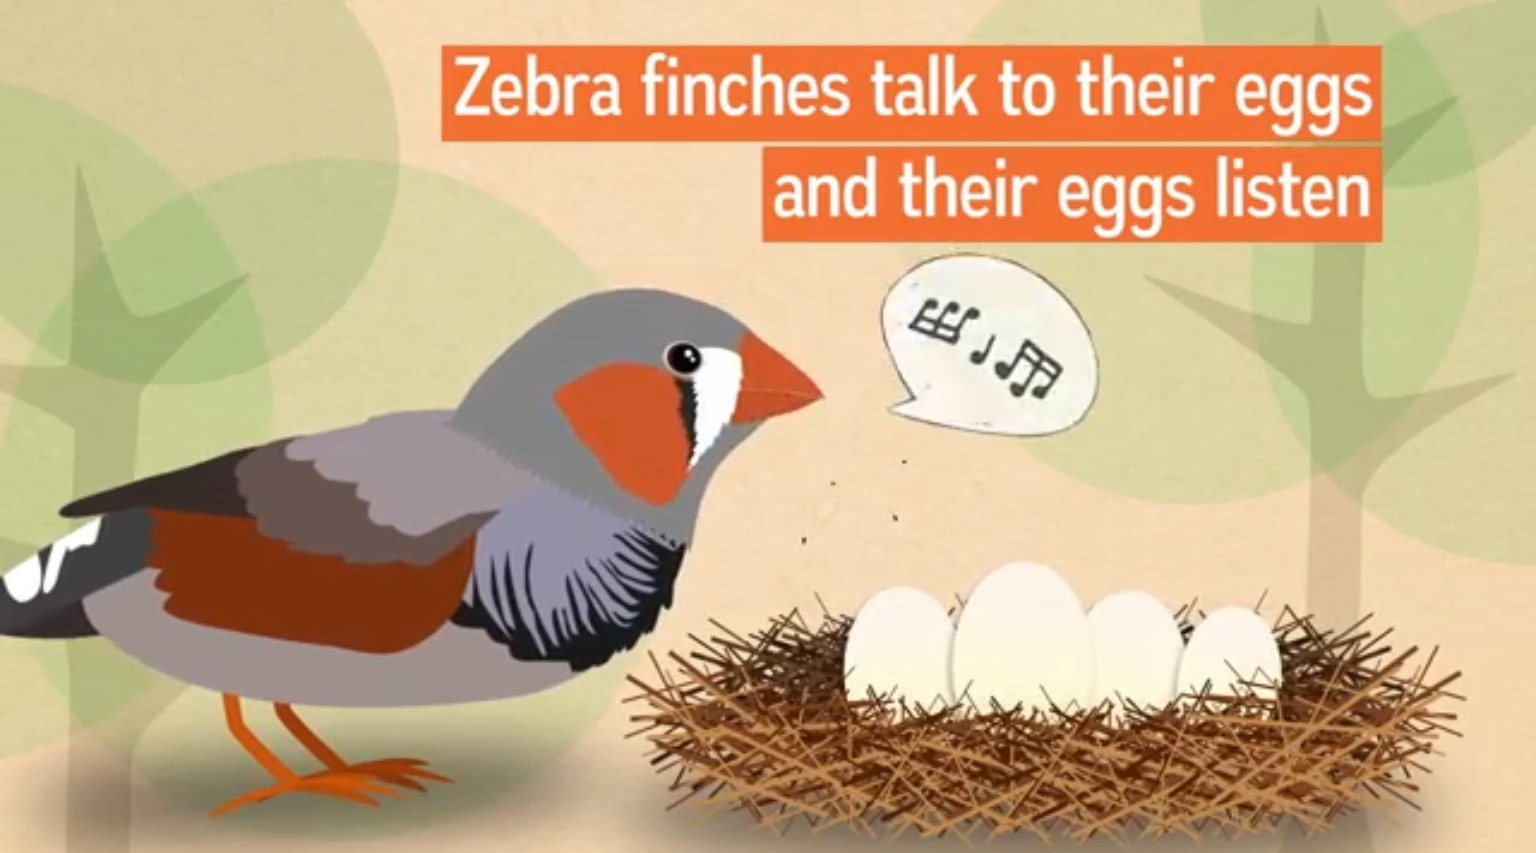 ZebraFinch01.jpg